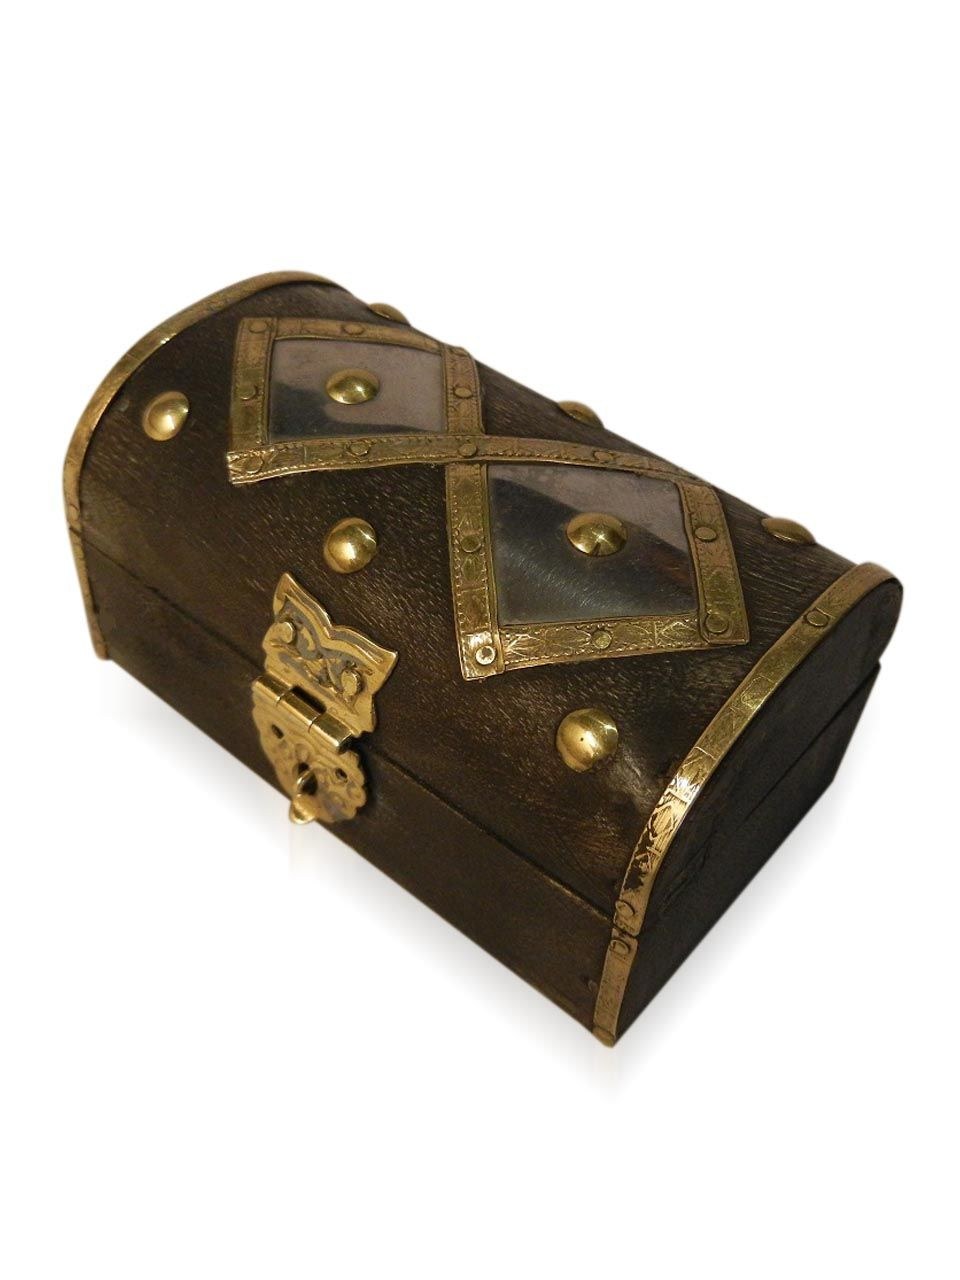 Wooden Antique Brass Work jewellery box - cpwdbojb00022